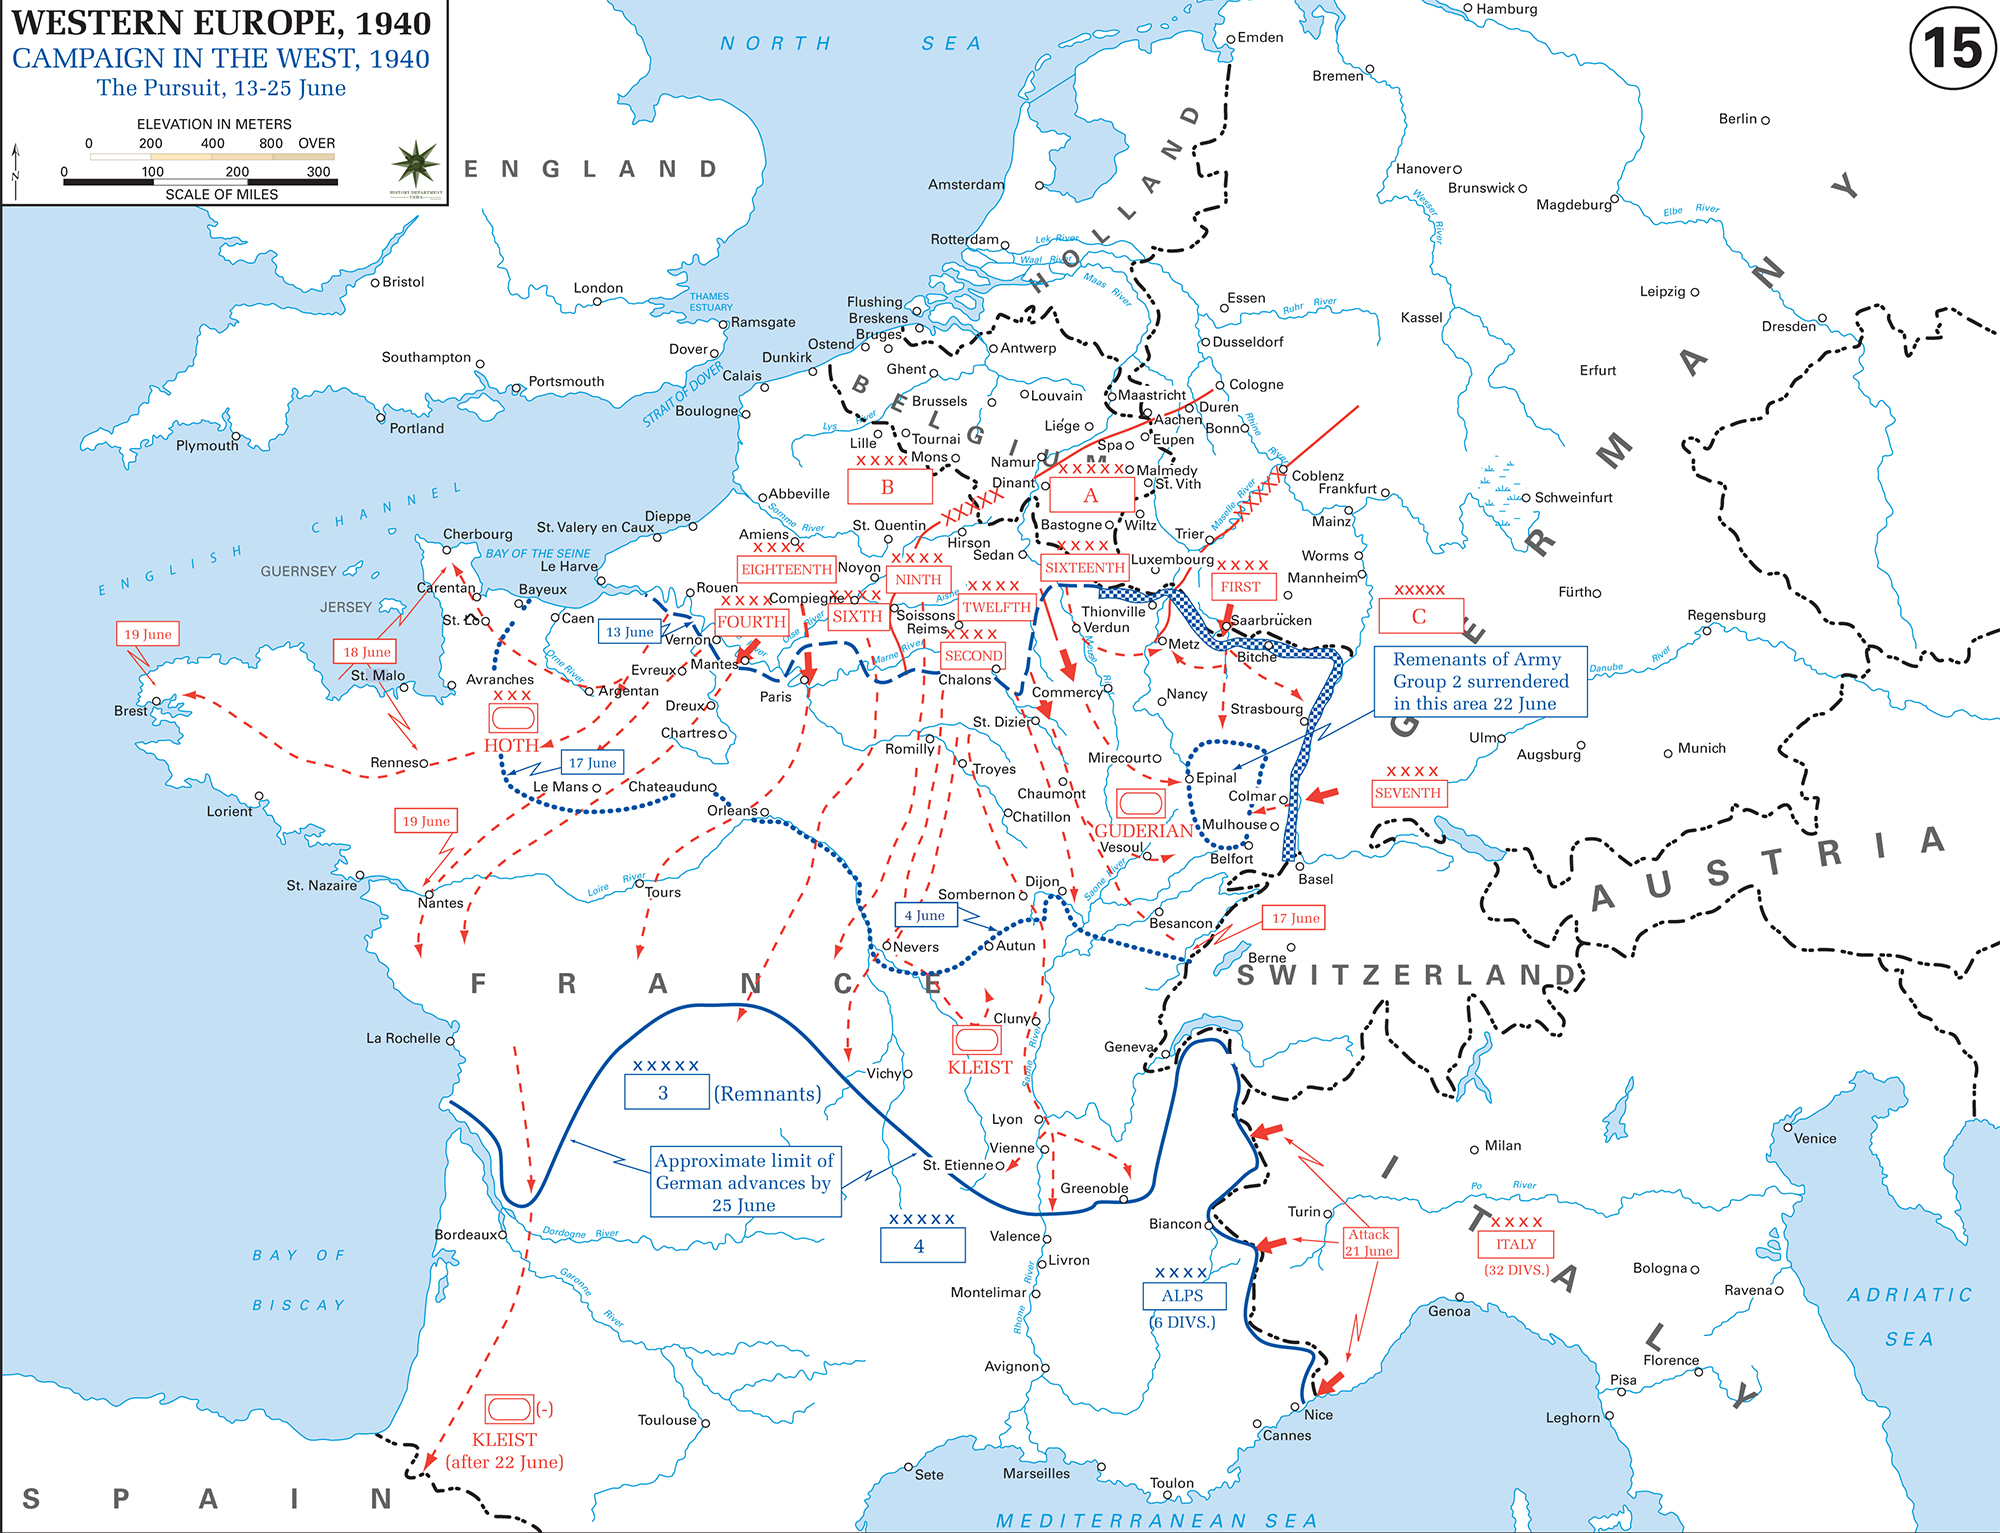 WWII - The War in the West: June 13-25, 1940